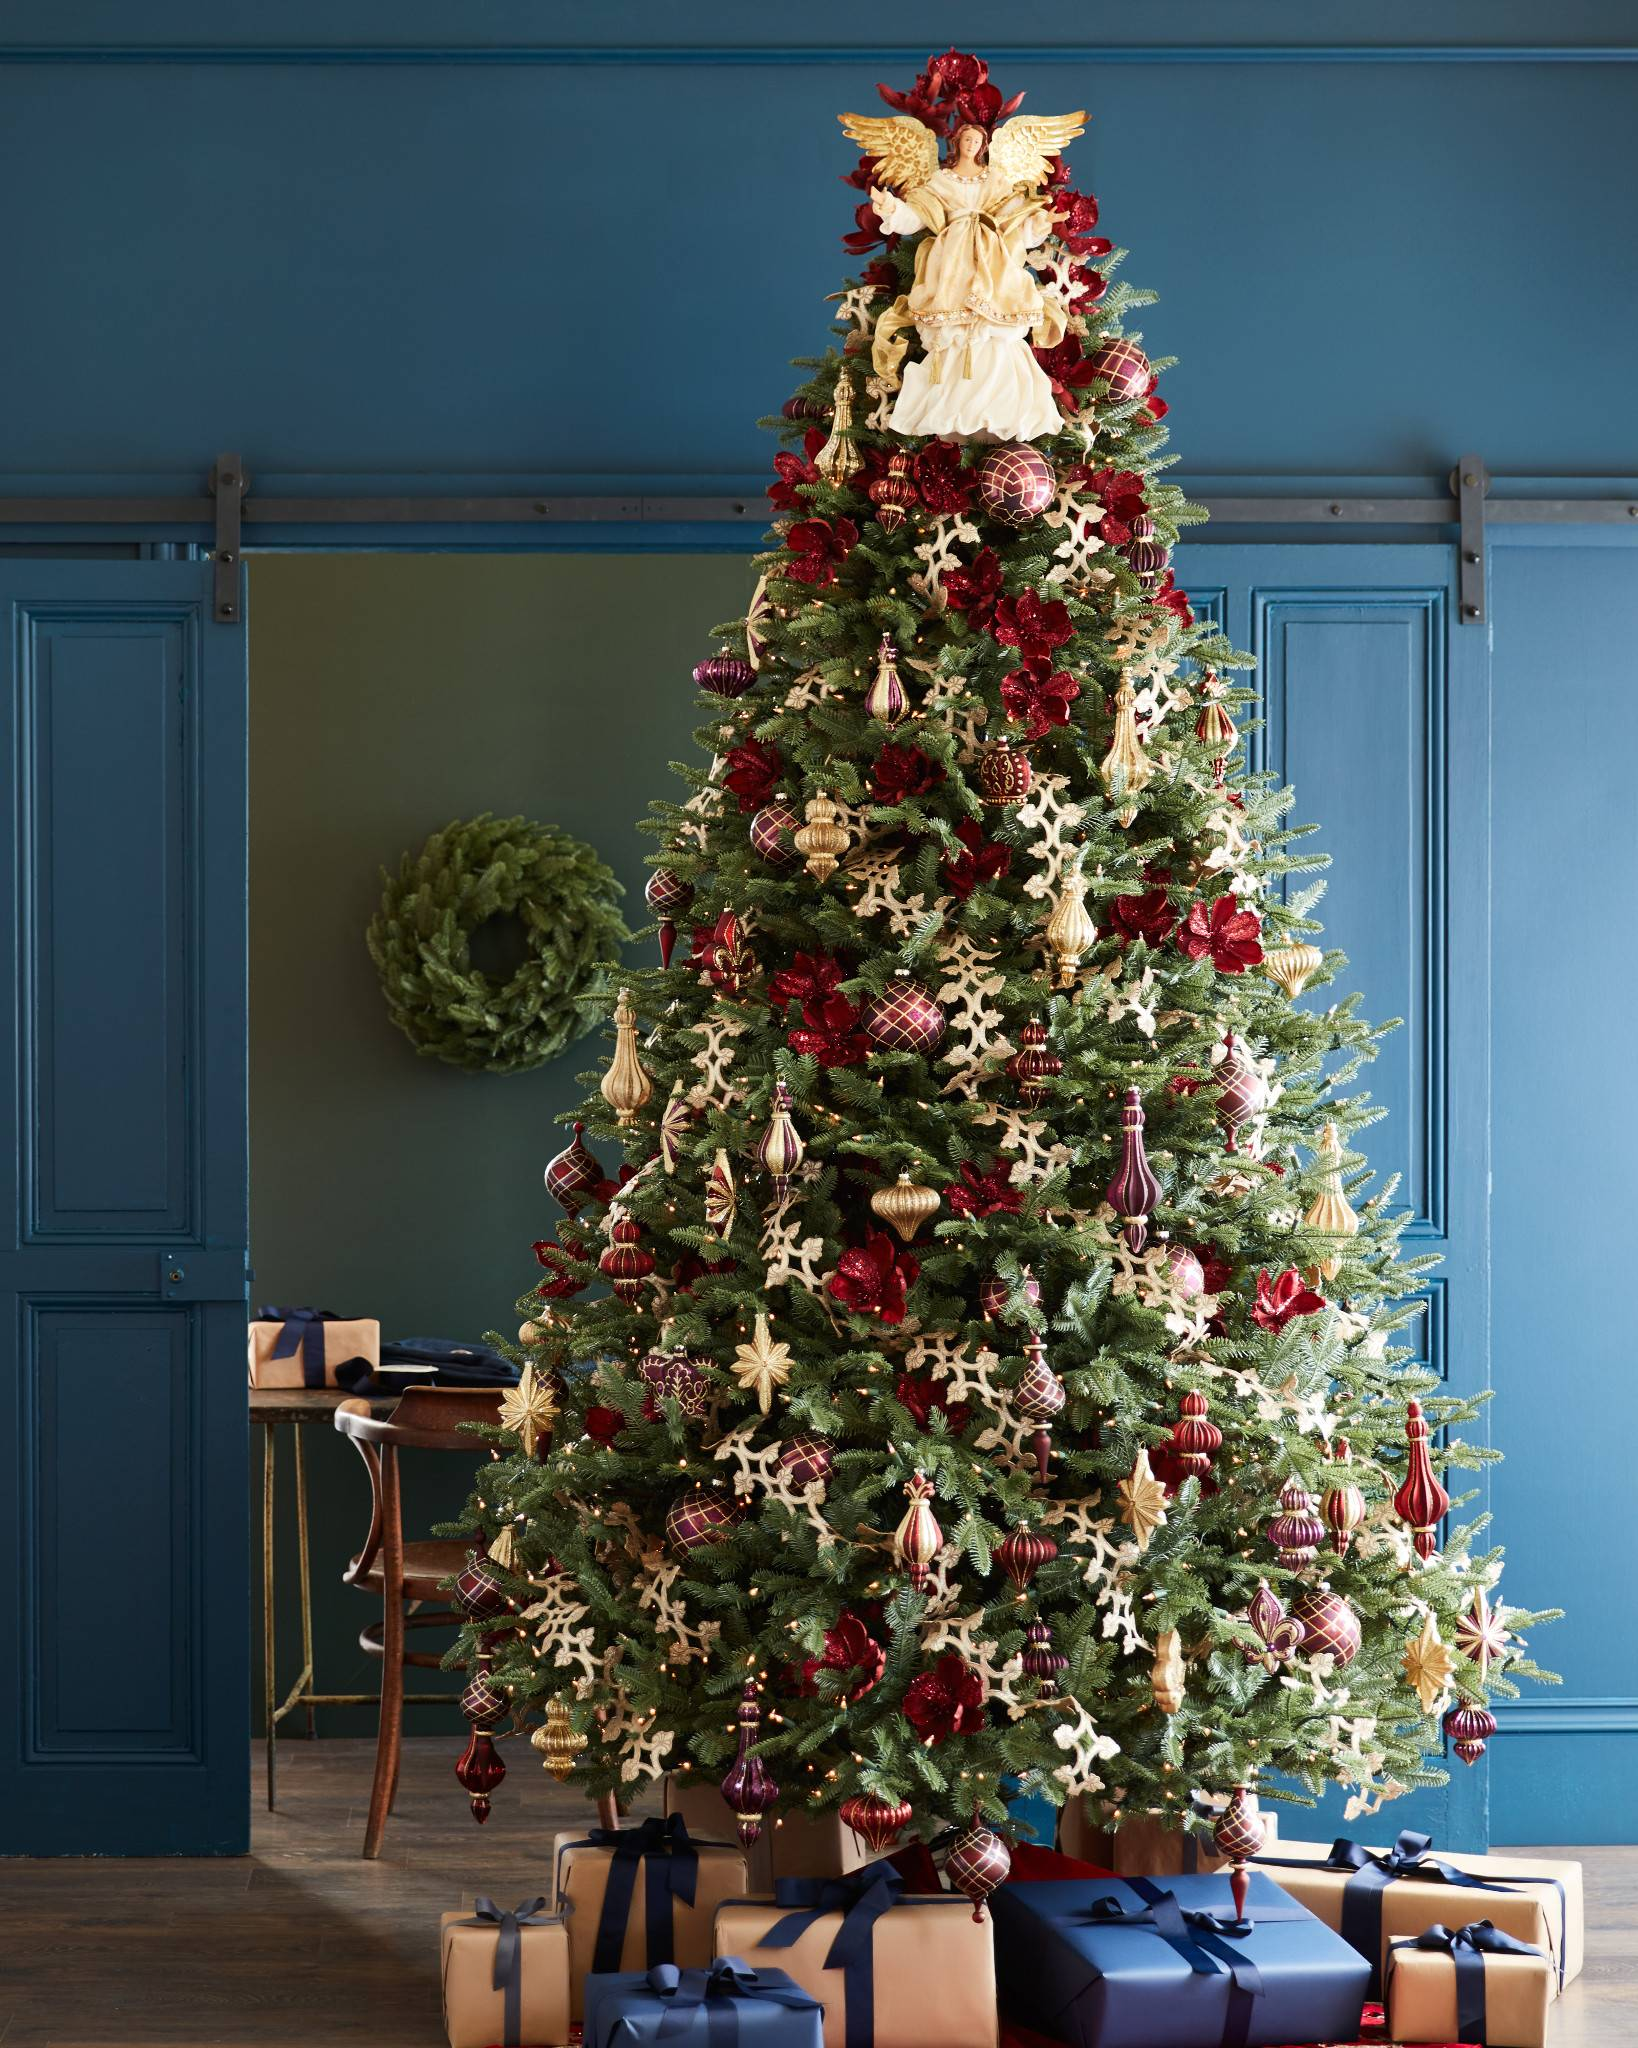 Bh Balsam Fir Tree In Home By Hill